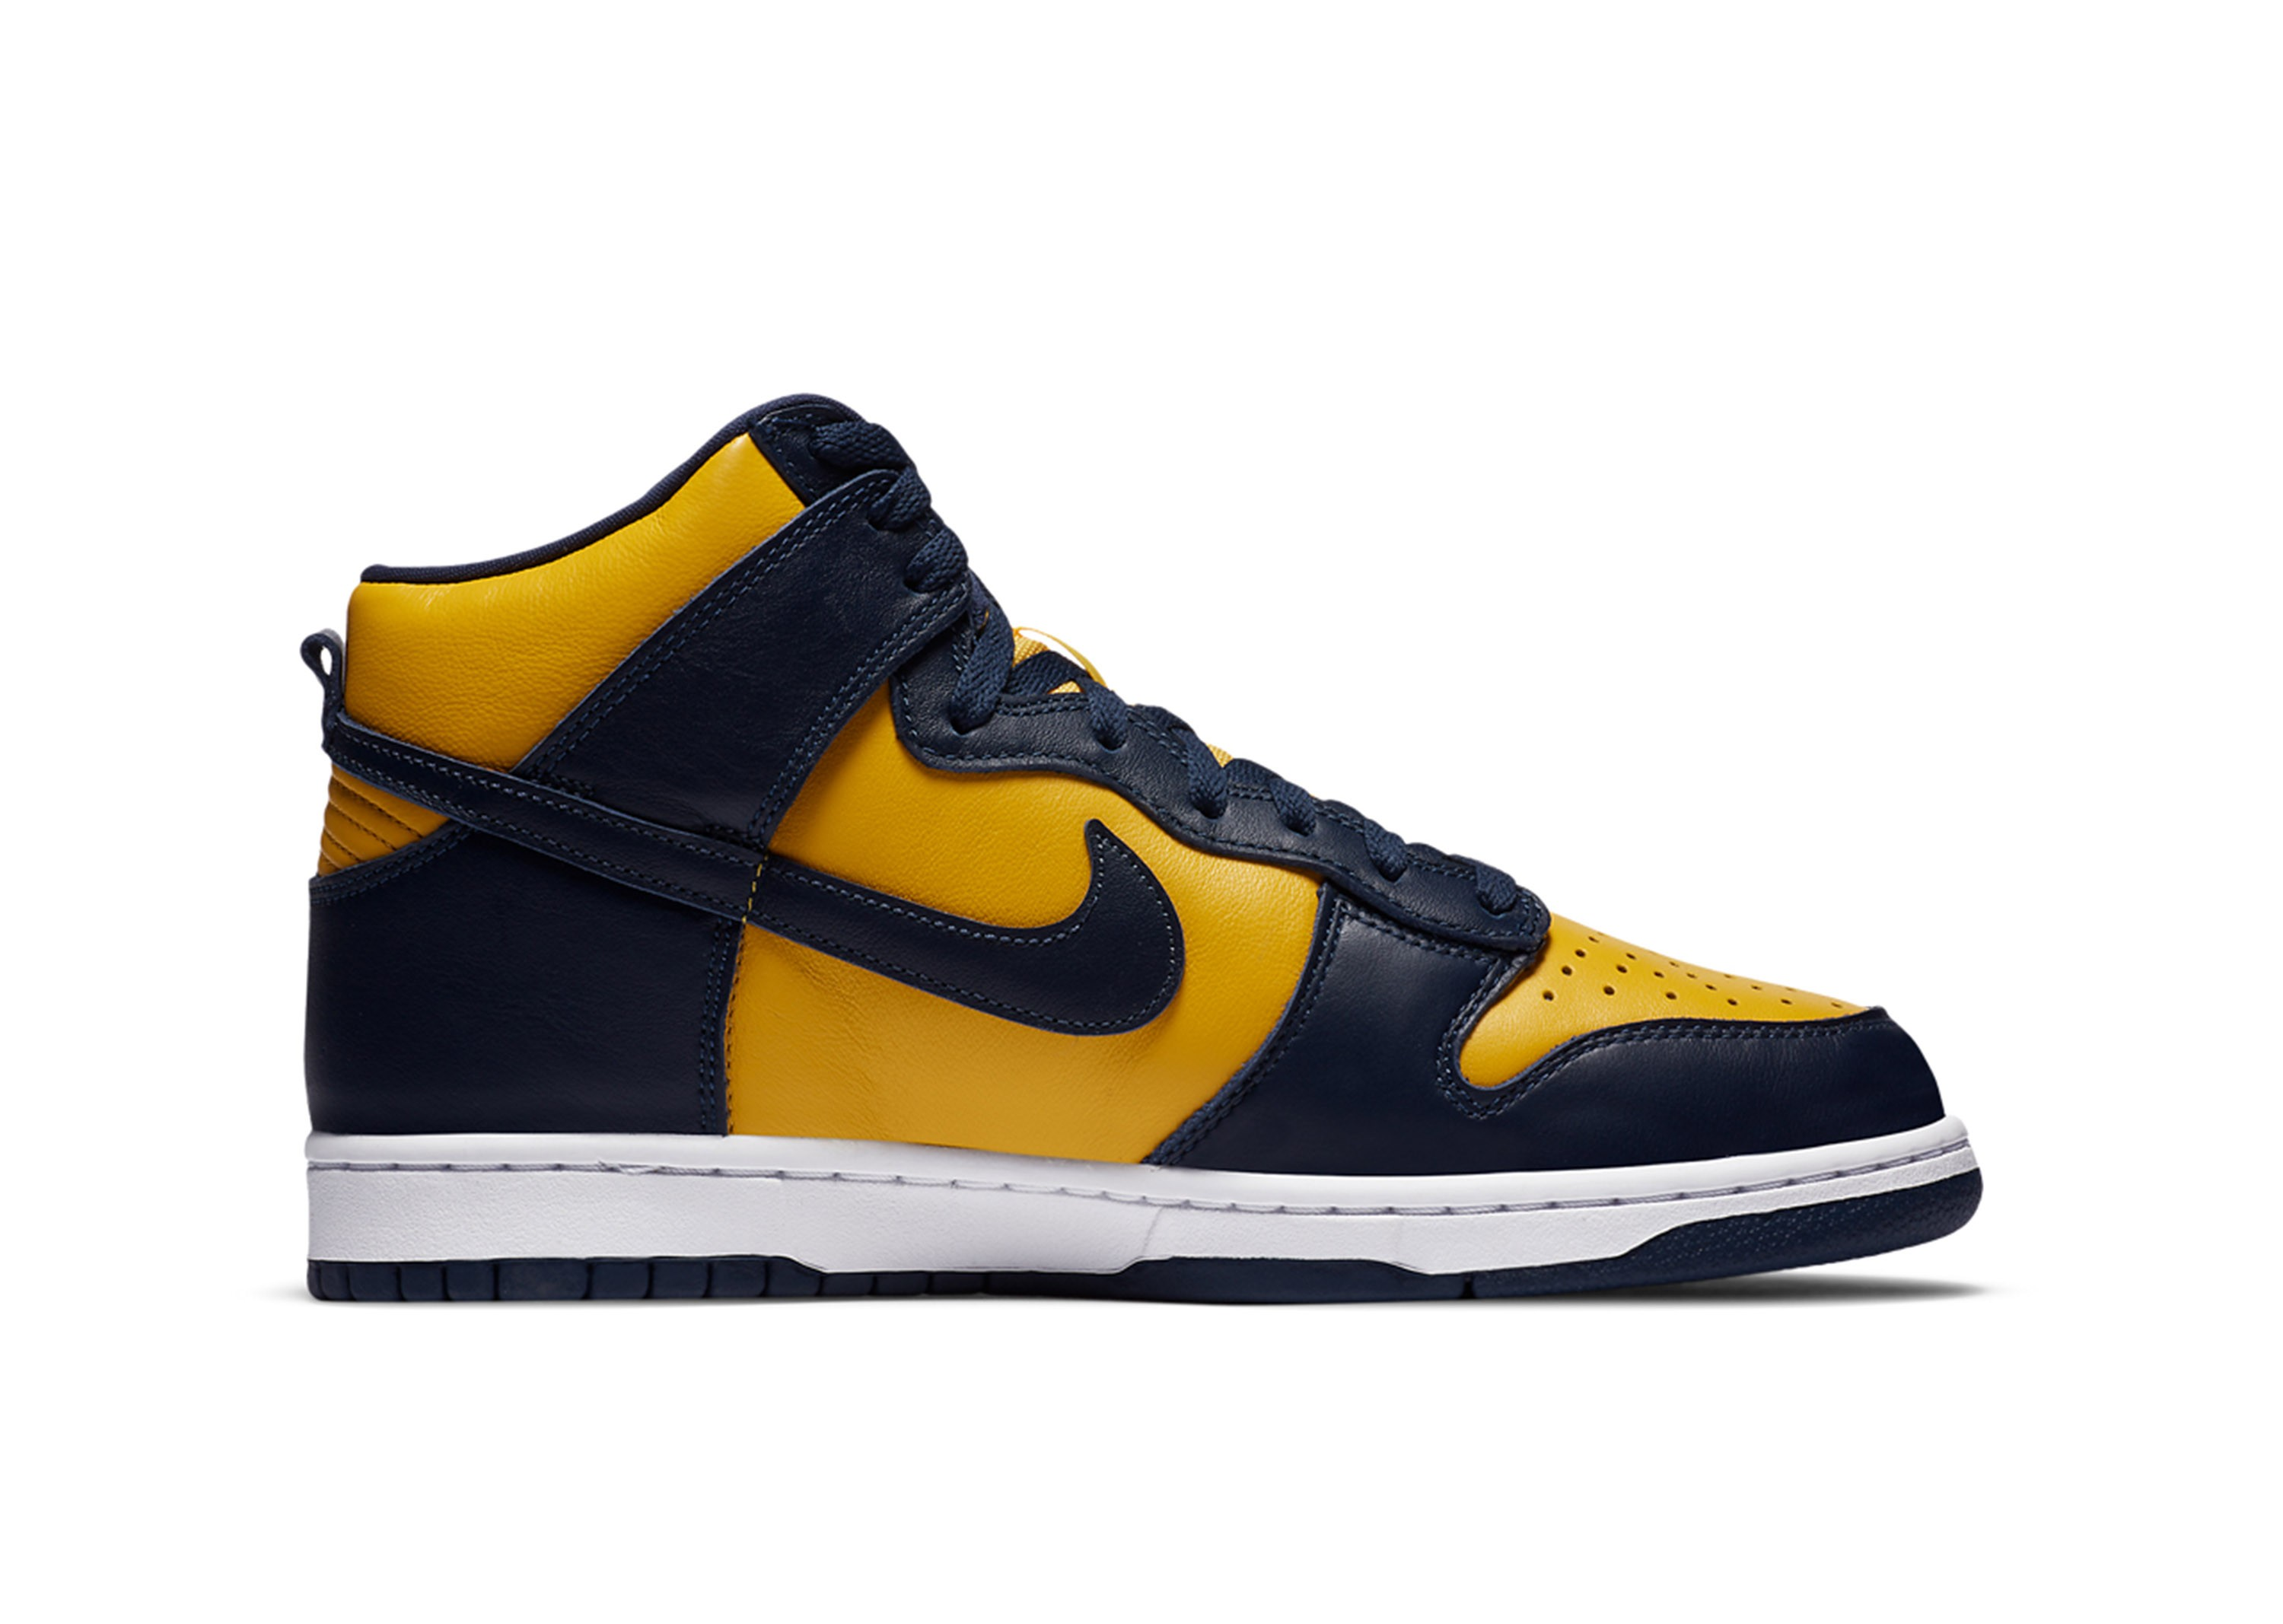 Nike_Dunk_High_Michigan_Navy_Maize_0001_nike-dunk-high-michigan-cz8149-700-official-release-date-info-2